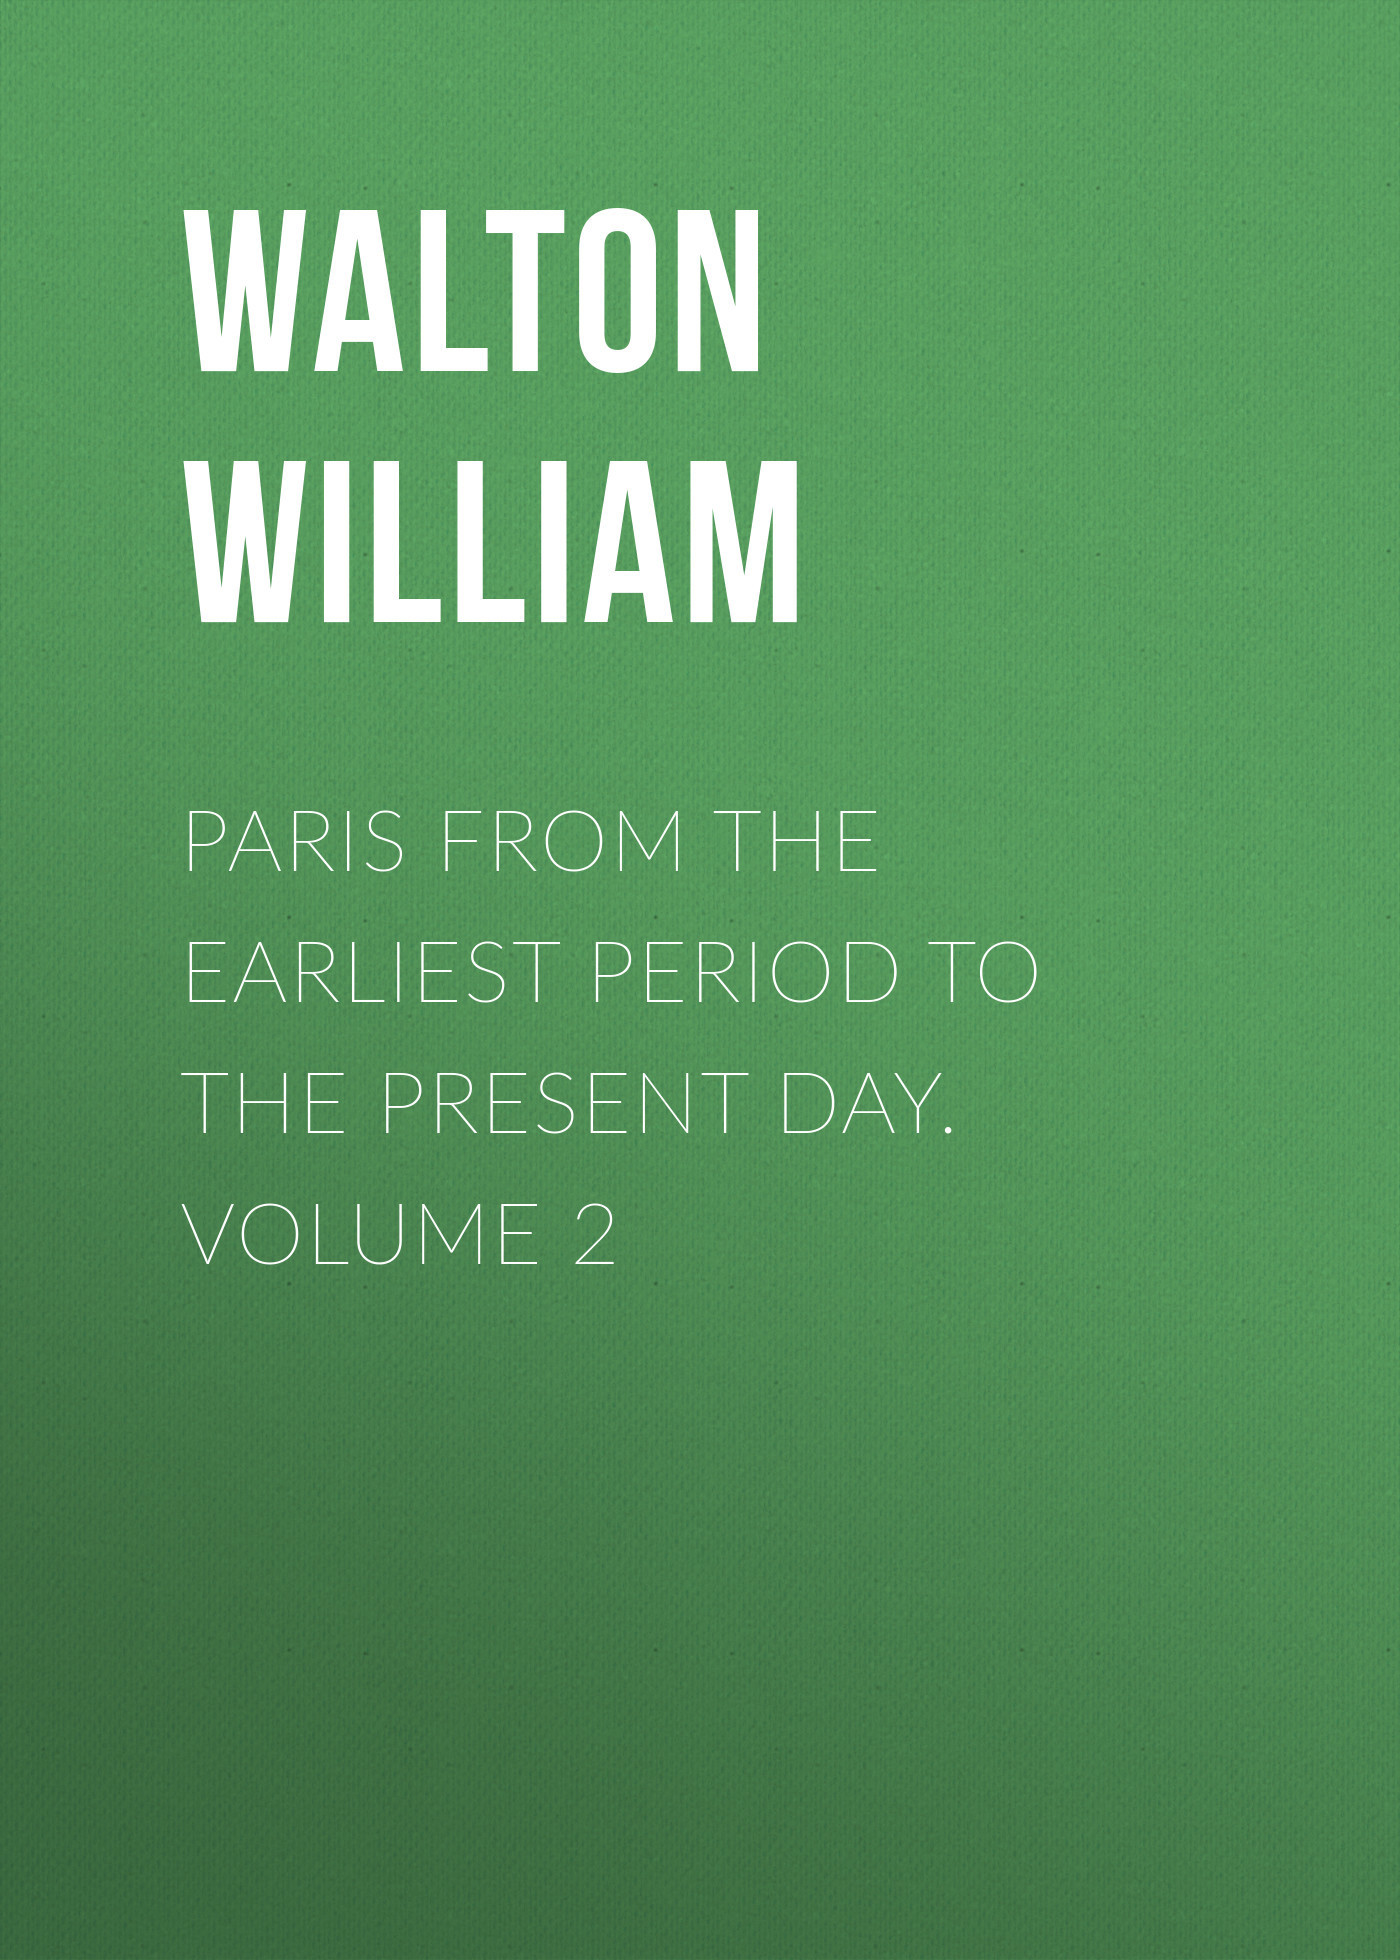 Walton William Paris from the Earliest Period to the Present Day. Volume 2